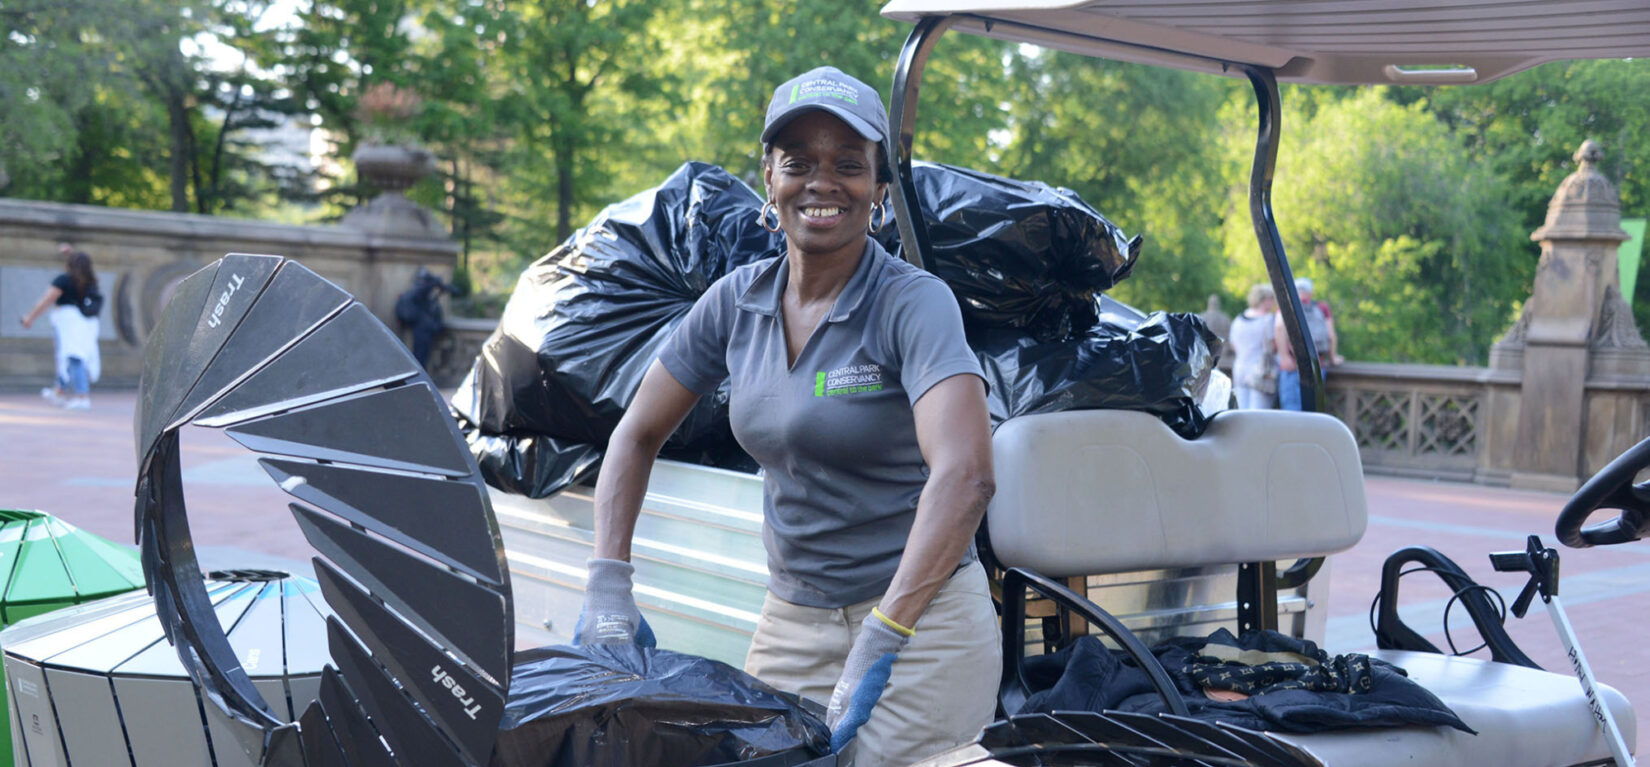 A member of the Conservancy staff emptying trash bins